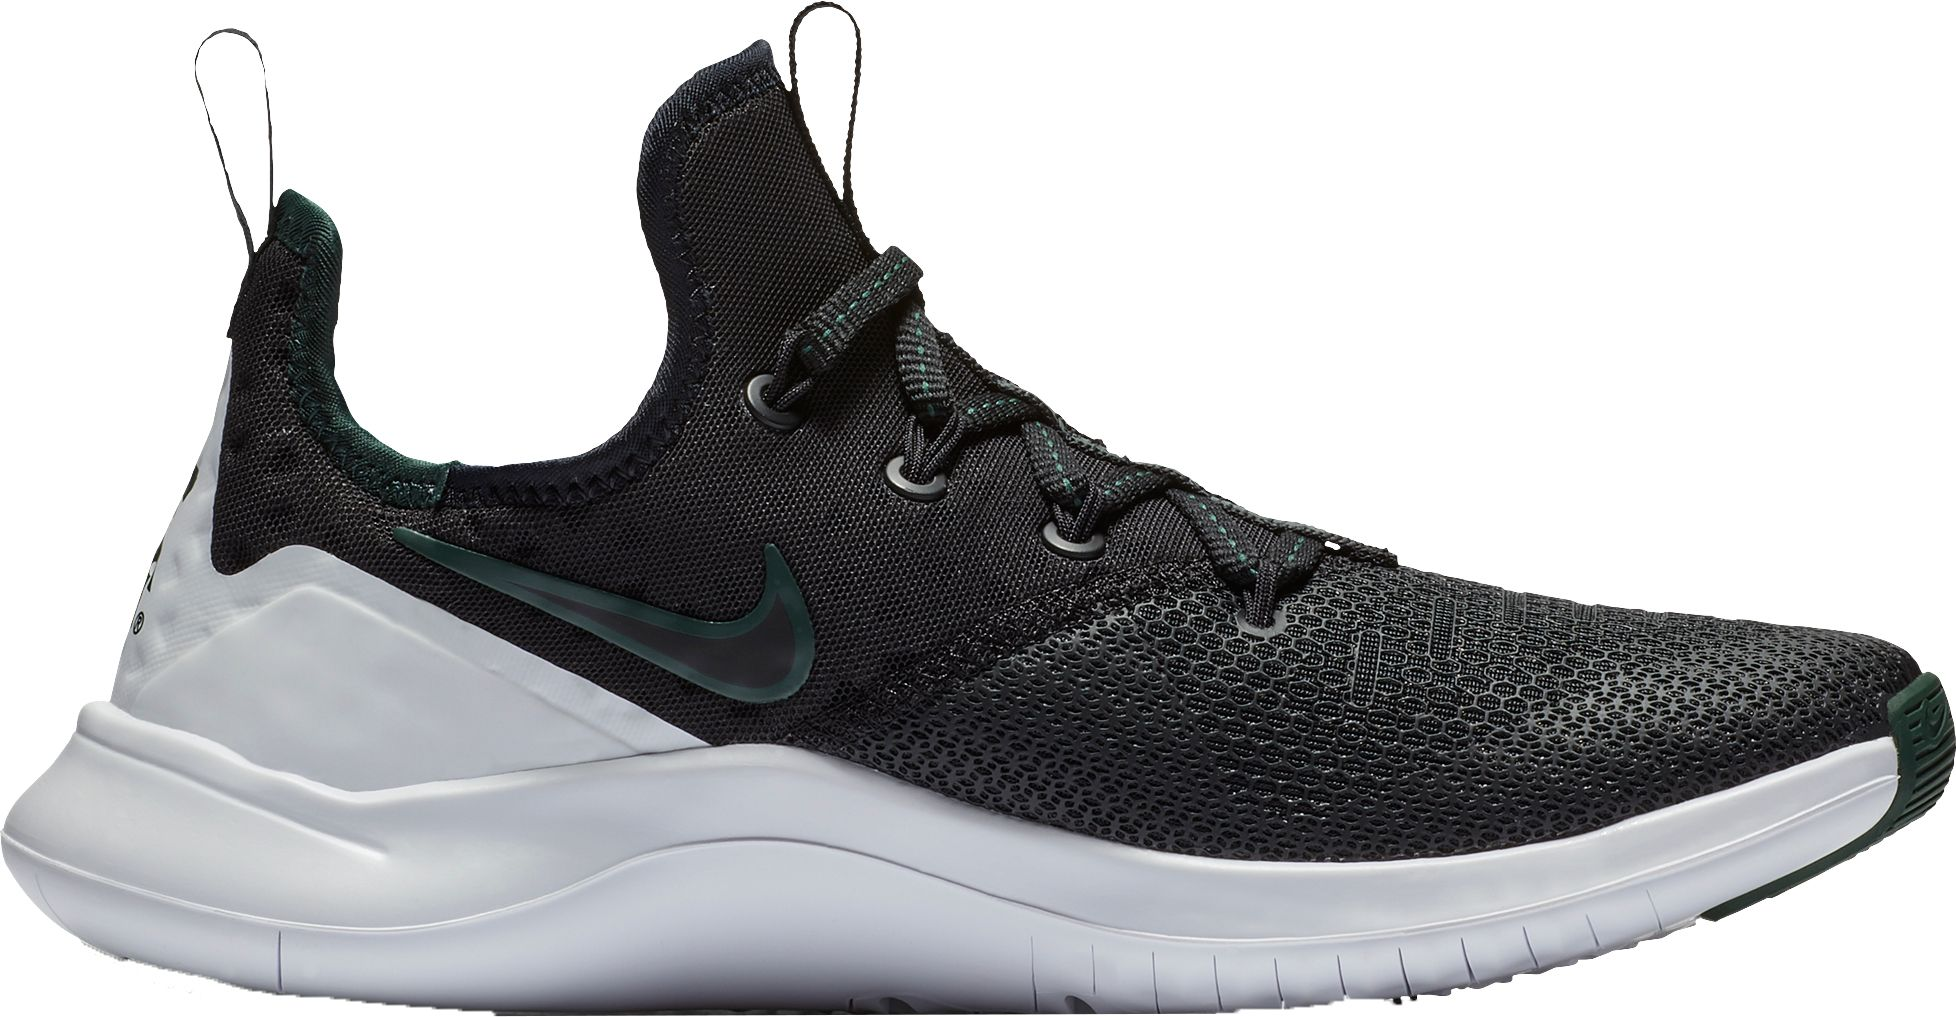 michigan state nike sneakers Shop Finish Line for Women s Nike Free Run ... 0c27a0f6af